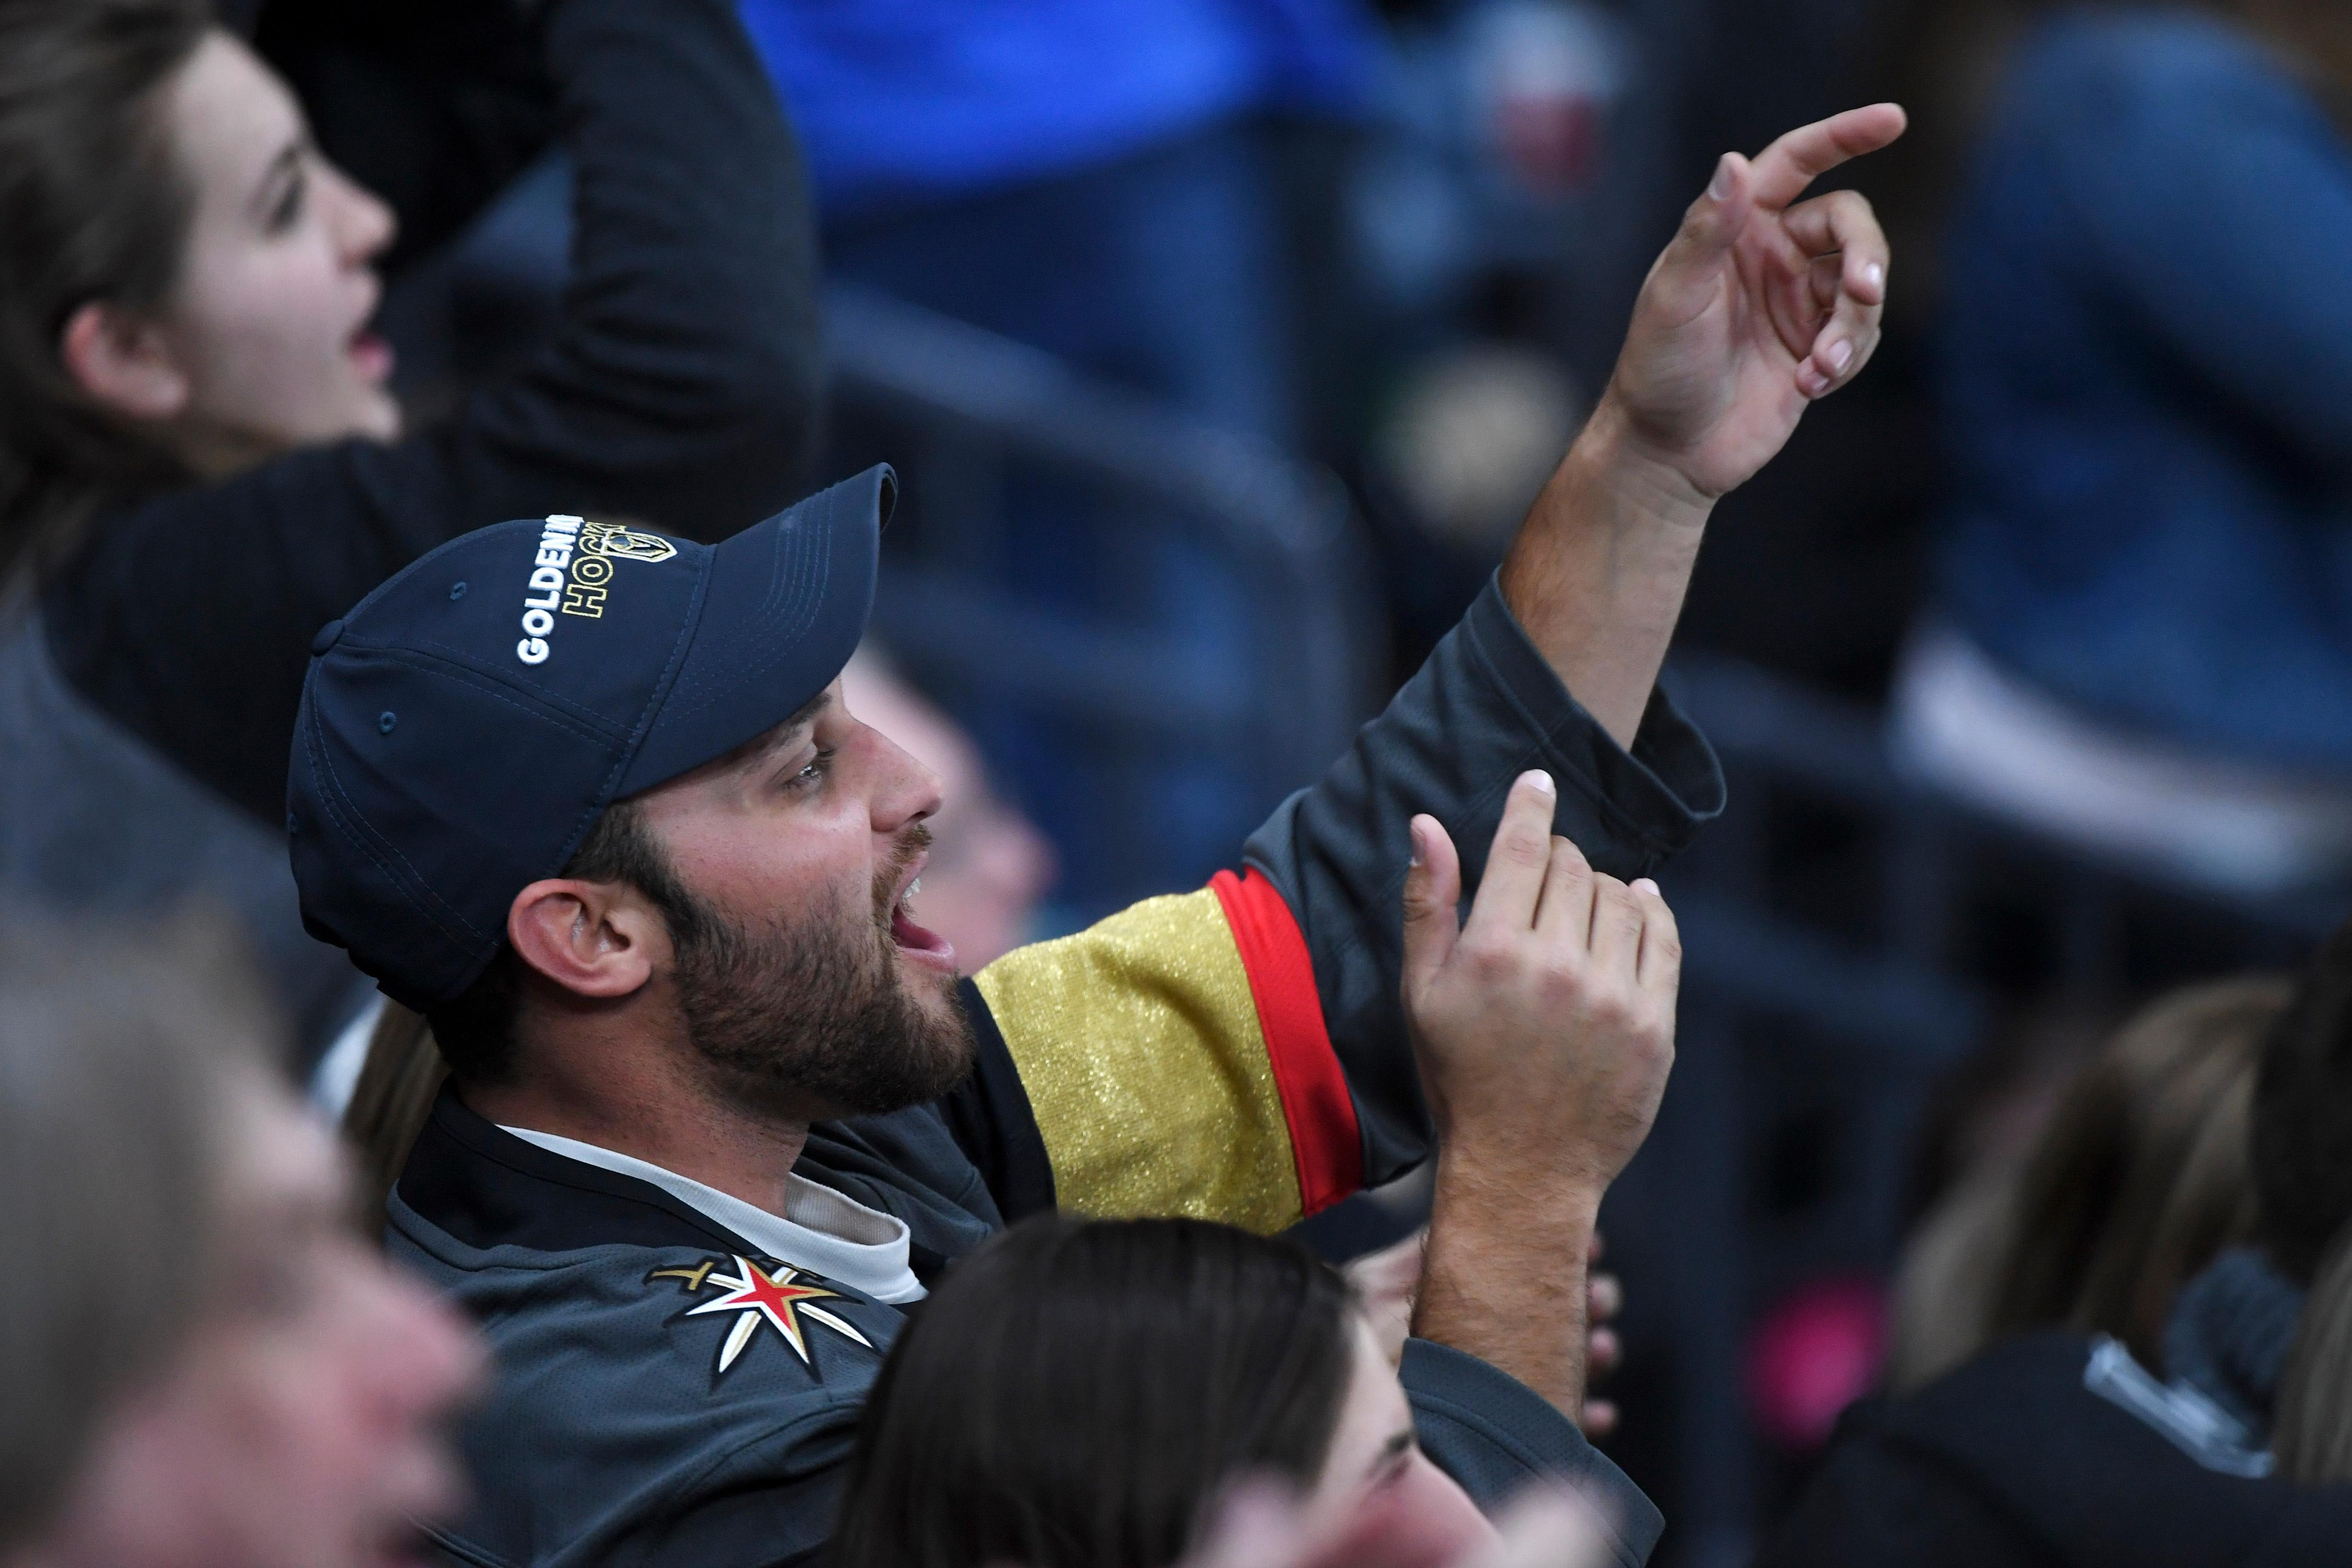 A Vegas Golden Knights fan cheers during their NHL hockey game against the Washington Capitals Saturday, December 23, 2017, at T-Mobile Arena in Las Vegas.  CREDIT: Sam Morris/Las Vegas News Bureau